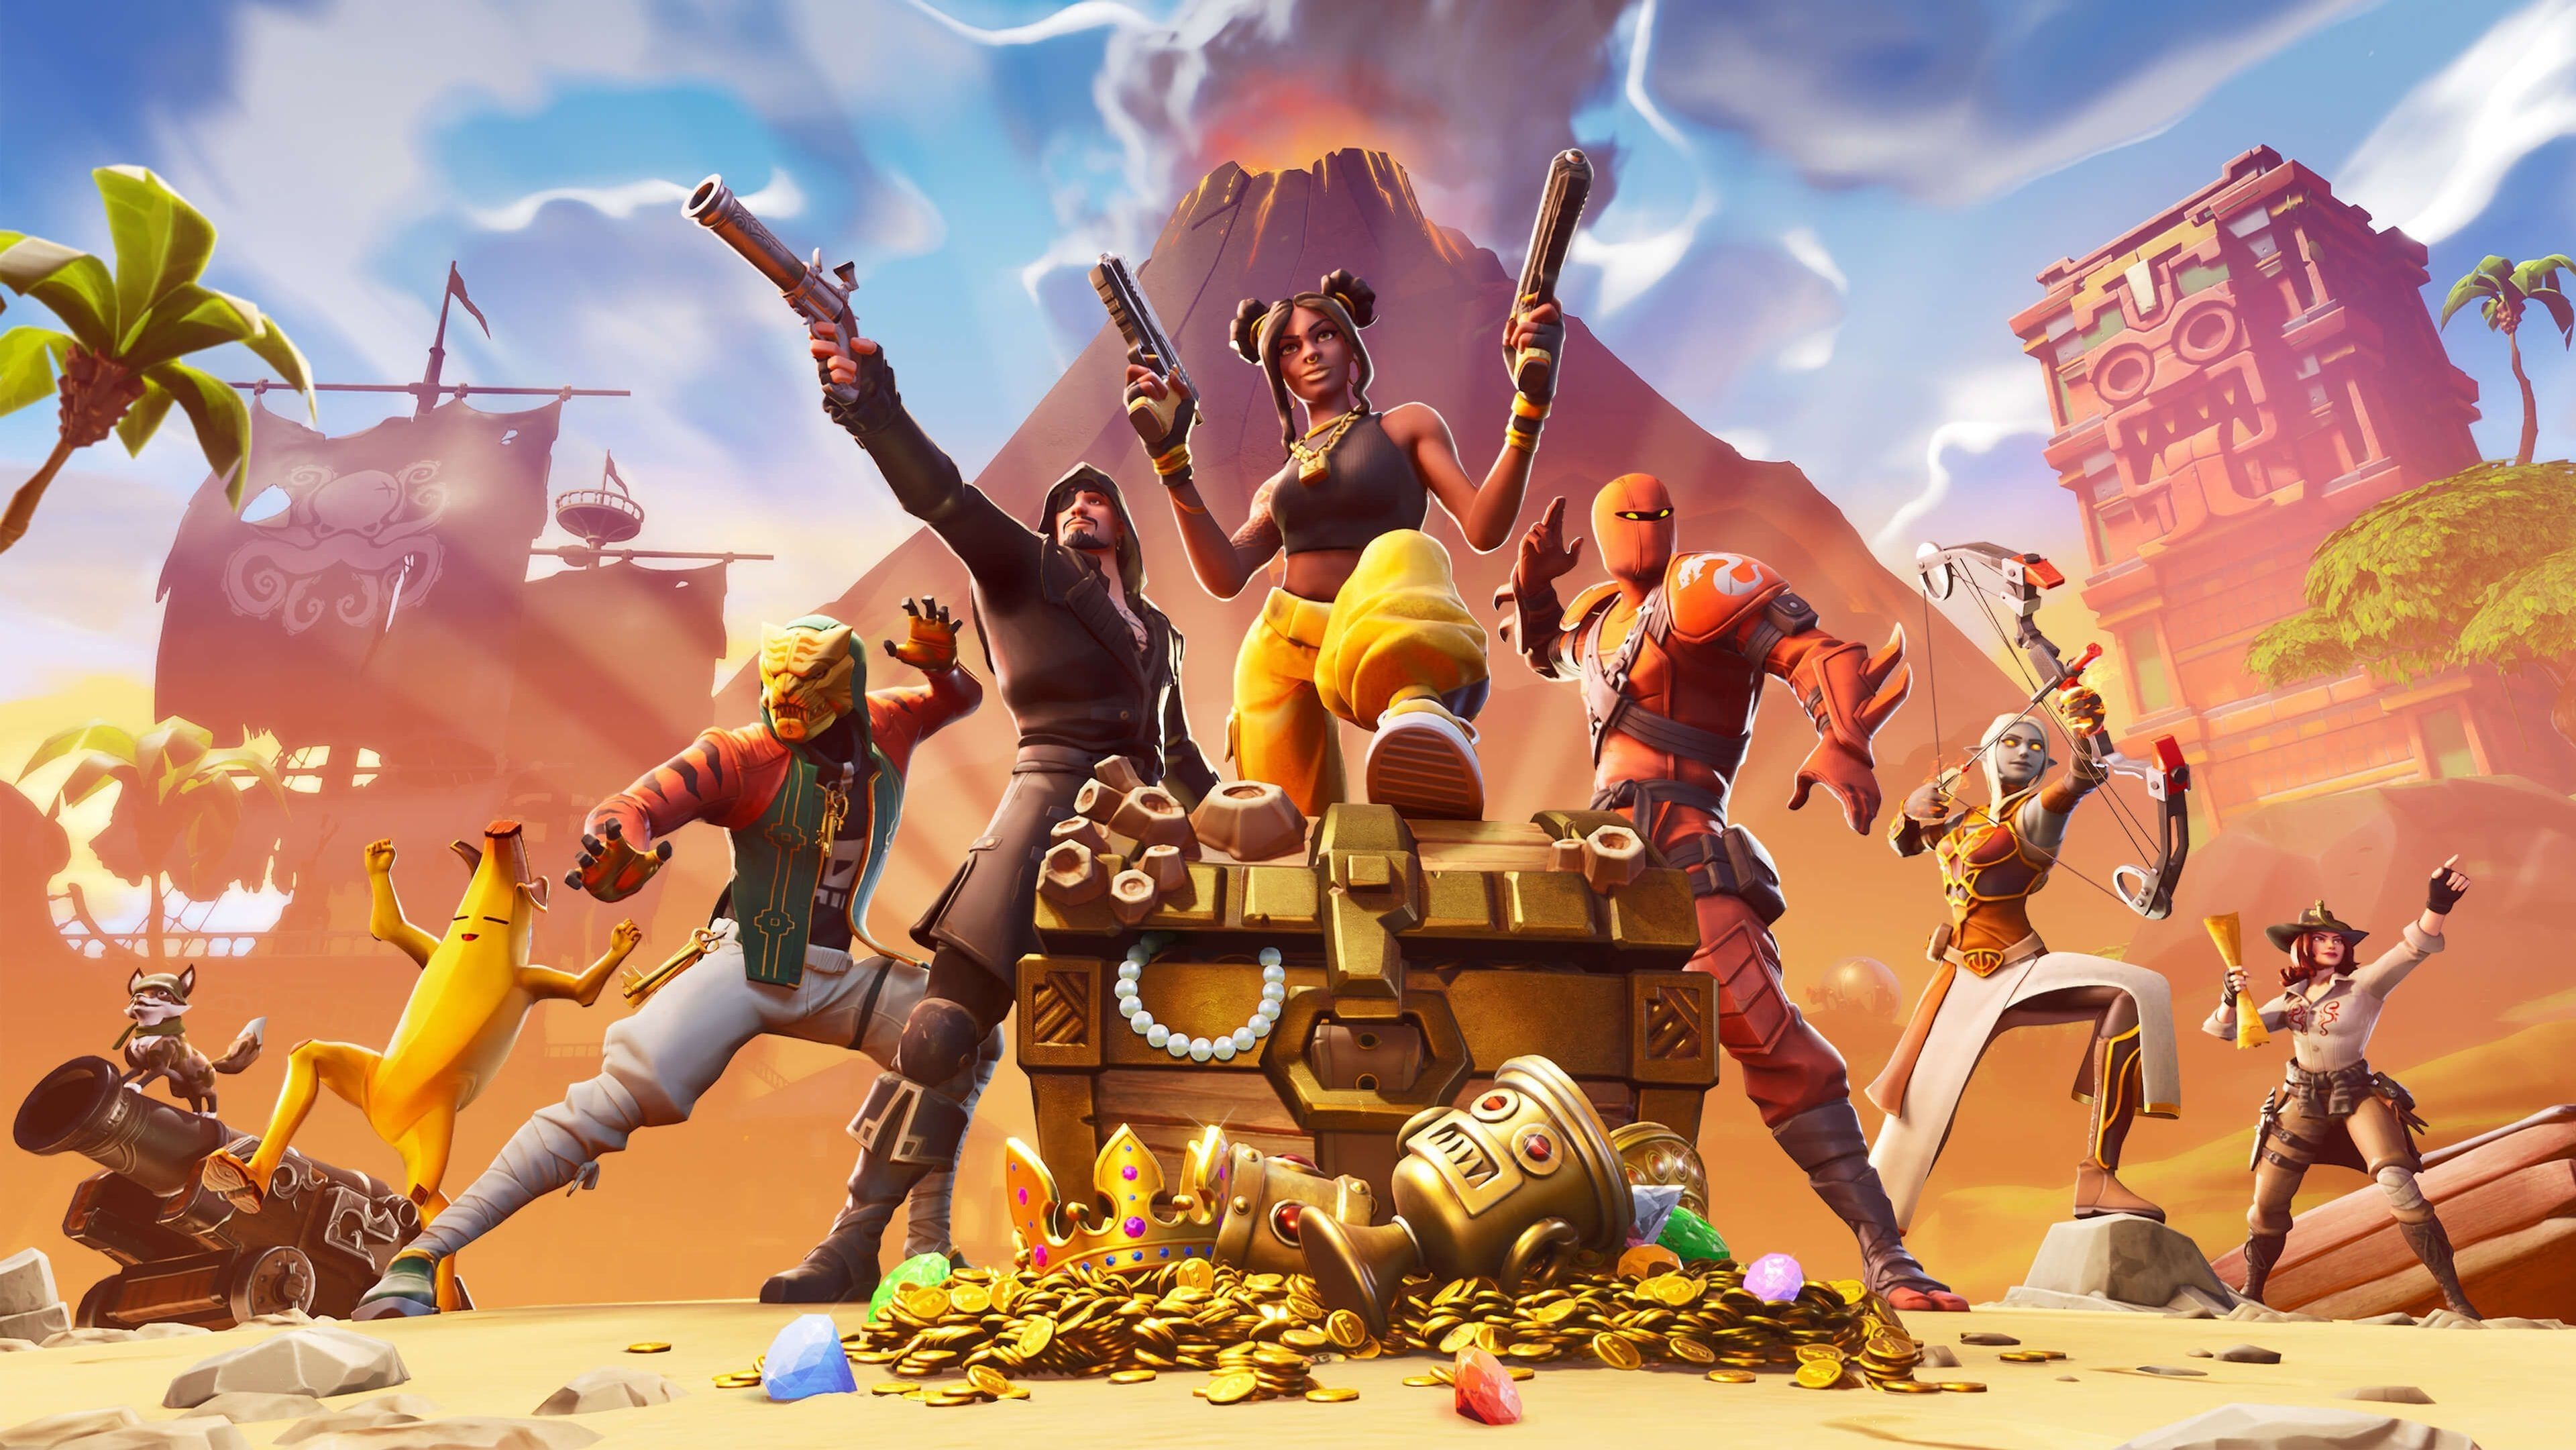 Fortnite Heroes Wallpaper Hd Games 4k Wallpapers Images Photos And Background